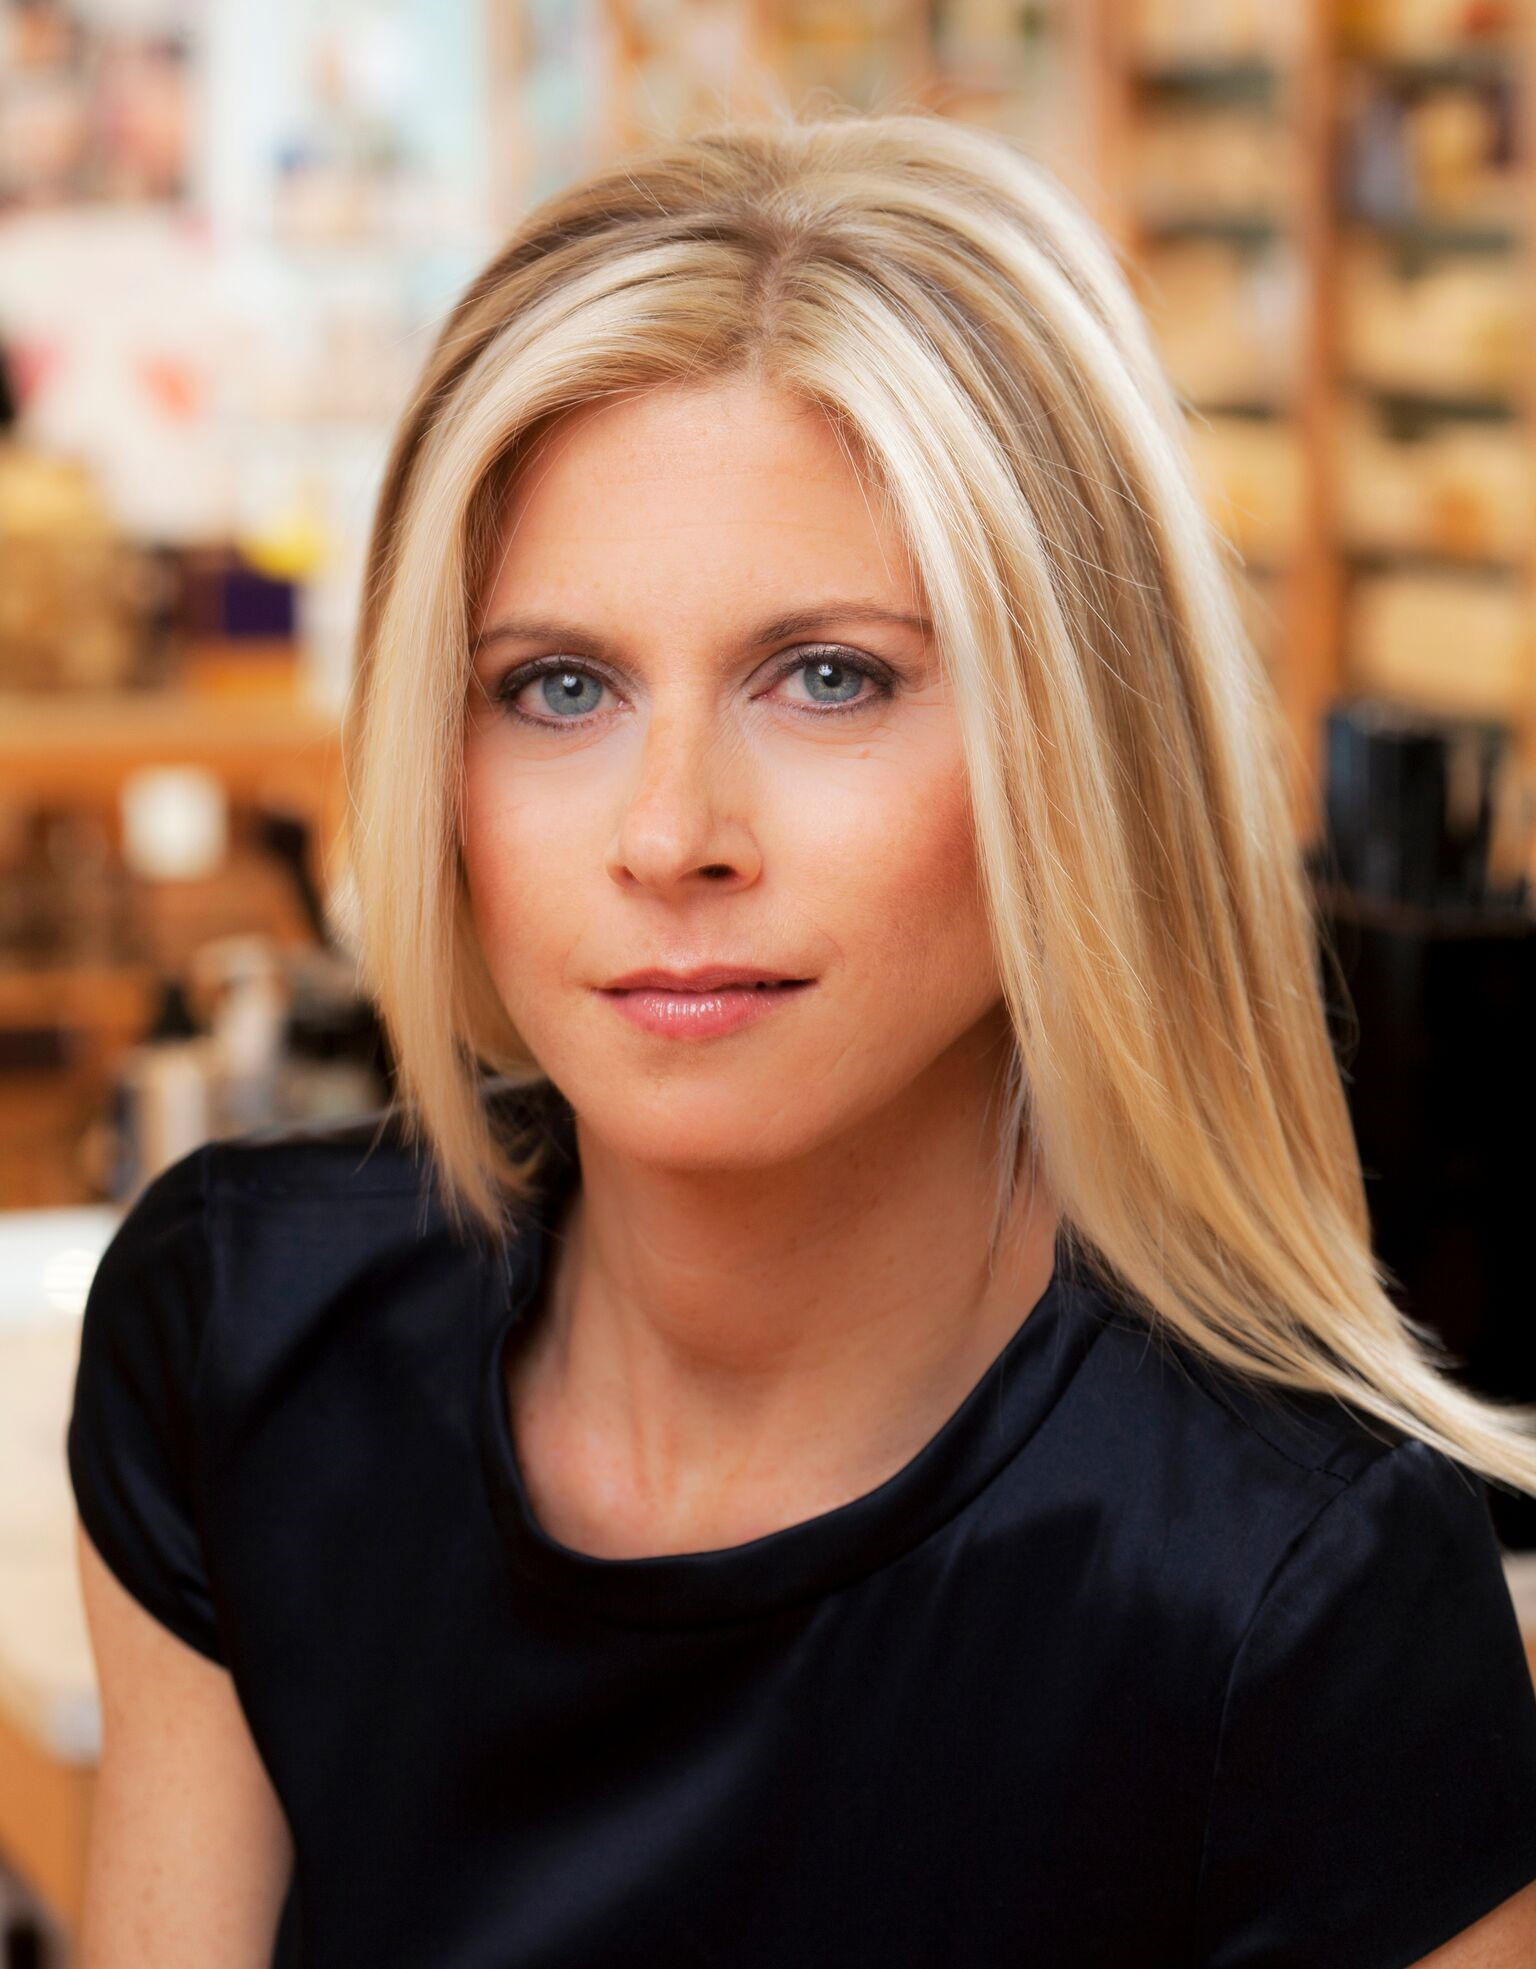 Founder and CEO Marla Beck opened the first Bluemercury boutique in 1999 in Georgetown, Washington D.C.